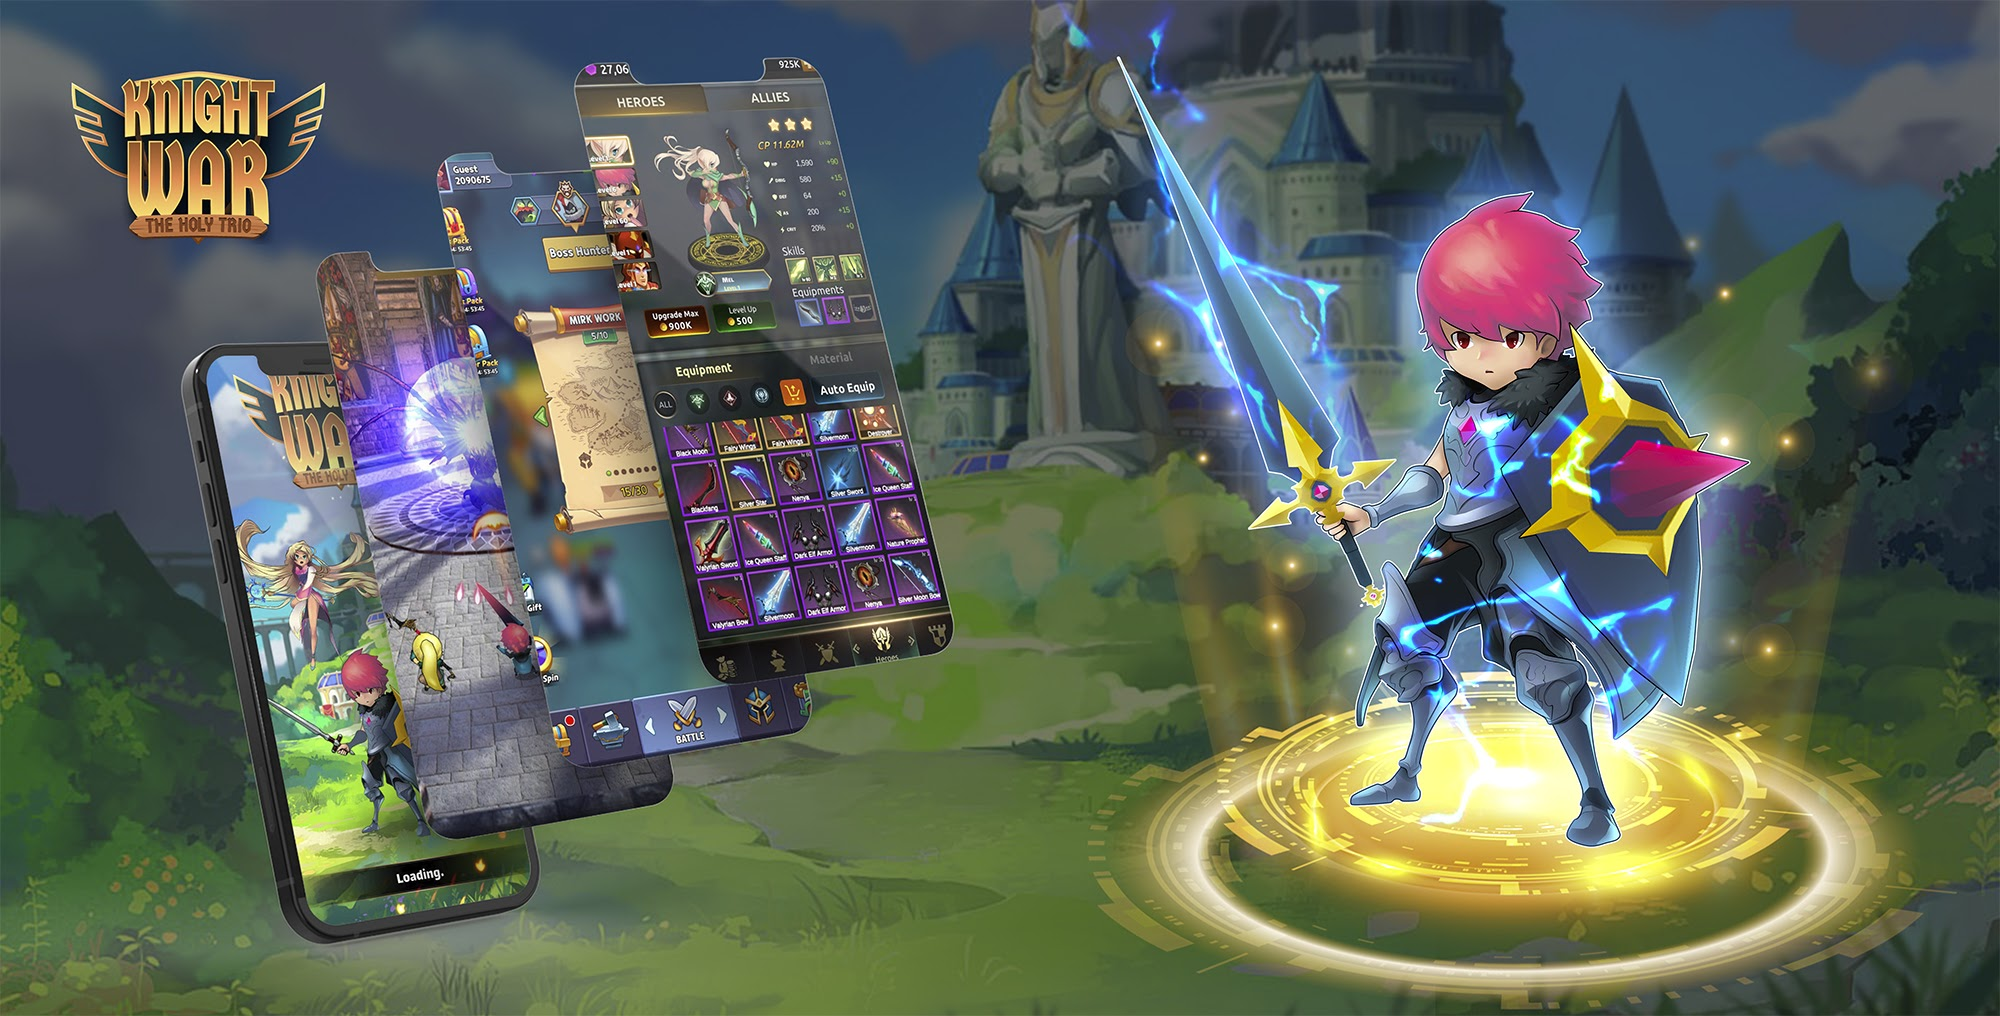 Revolutionary Blockchain Game Knight War The Holy Trio to premiere on Redkite & BSCStation